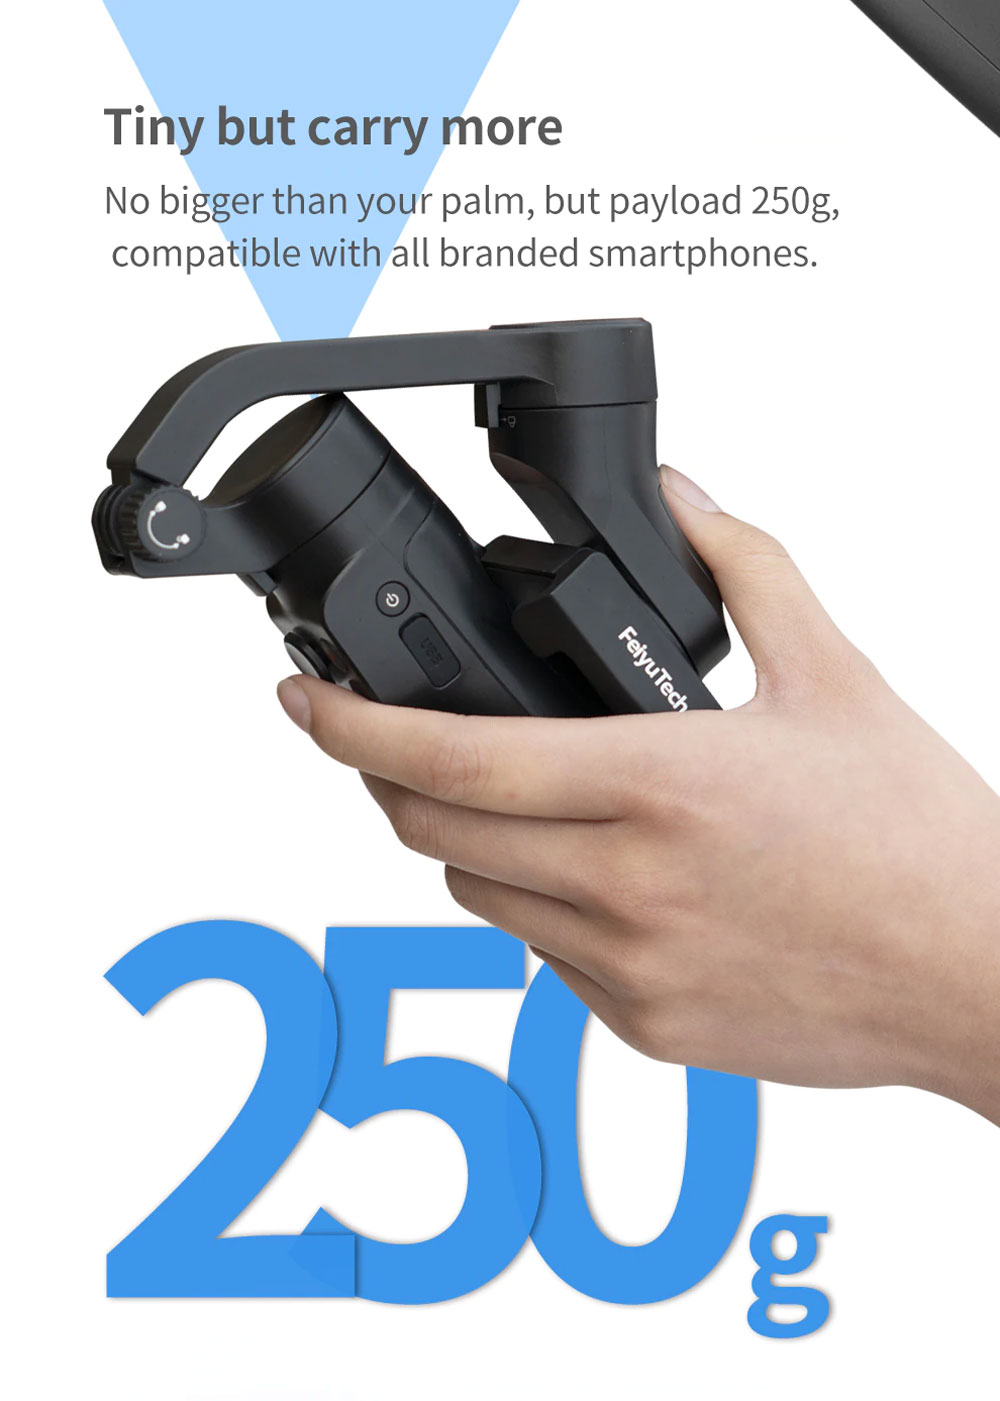 FeiyuTech VLOG Pocket 2 Foldable 3-Axis Handheld Gimbal Stabilizer Joystick Zoom for Smartphone - Black